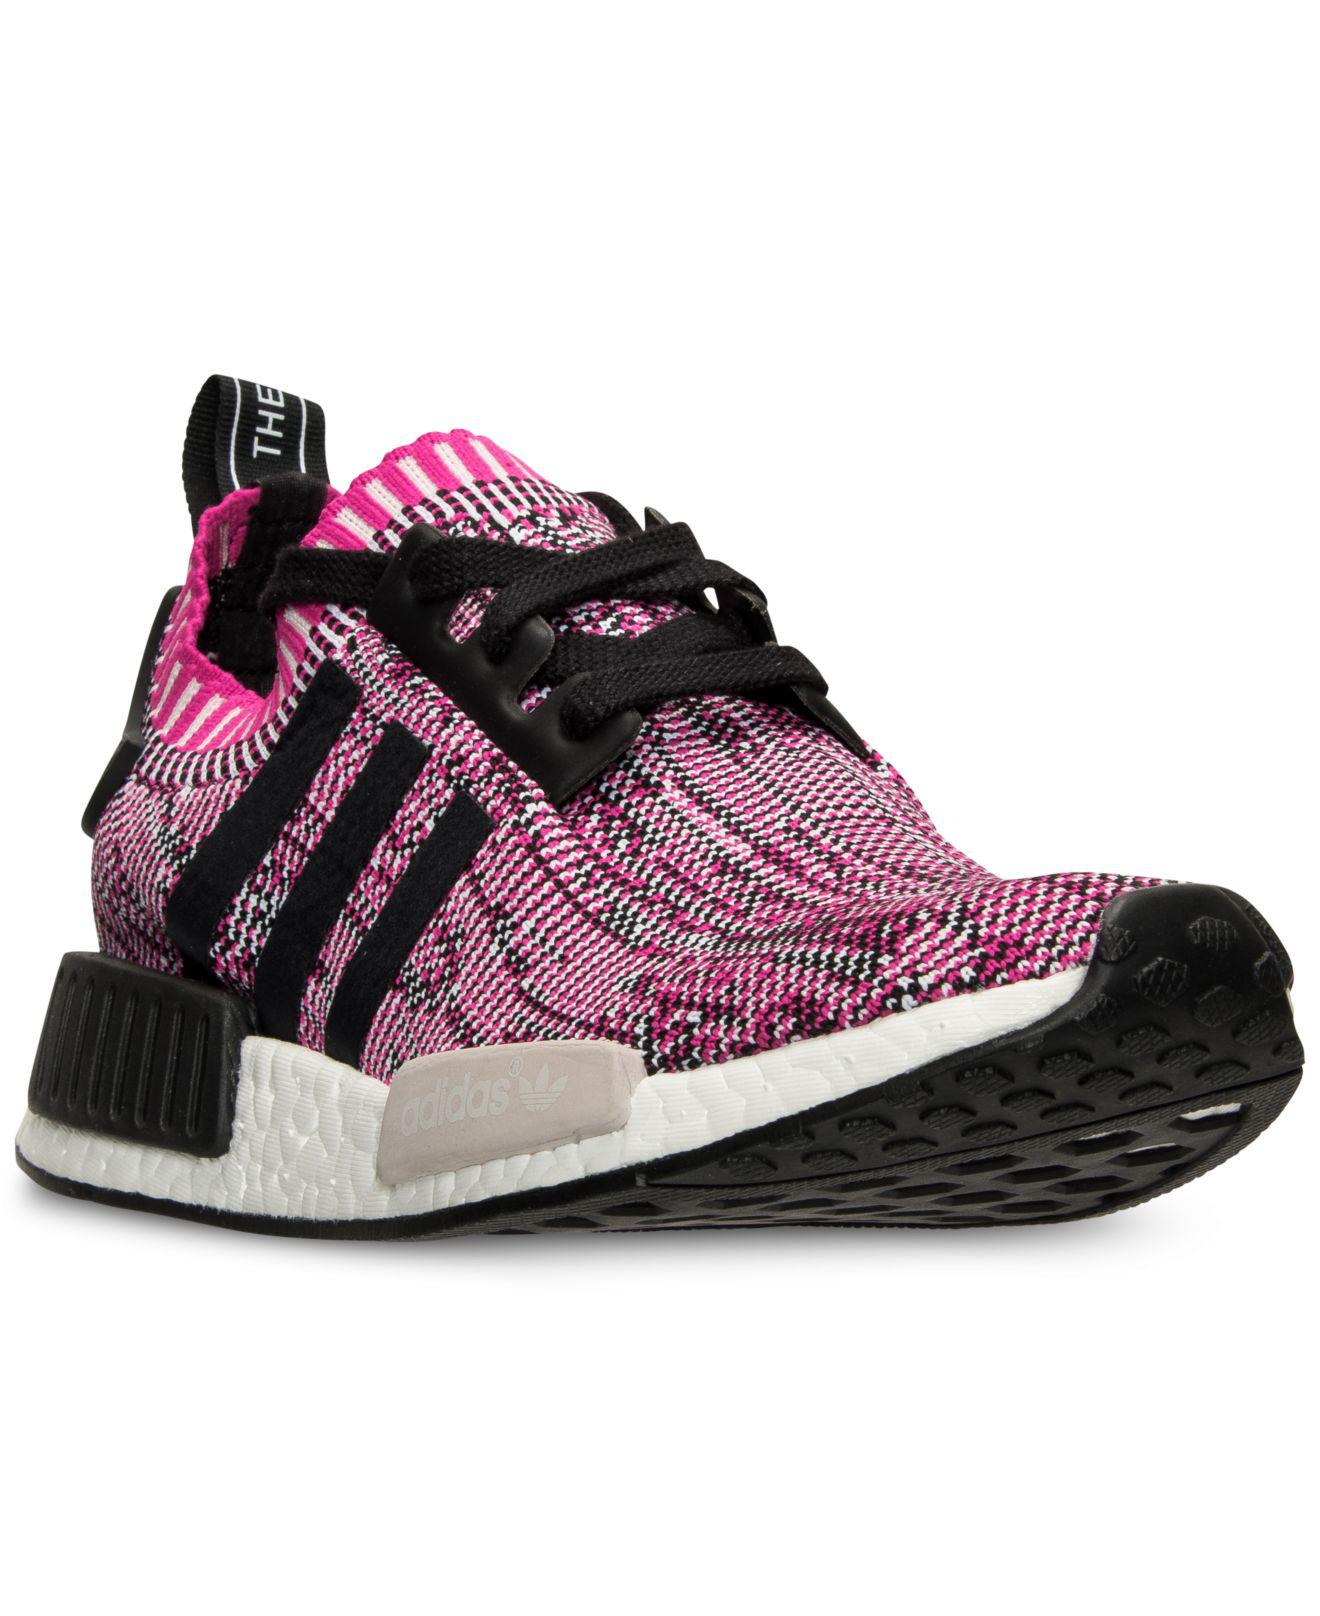 8290e27087da9 Lyst - adidas Women s Nmd Xr1 Primeknit Casual Sneakers From Finish ...